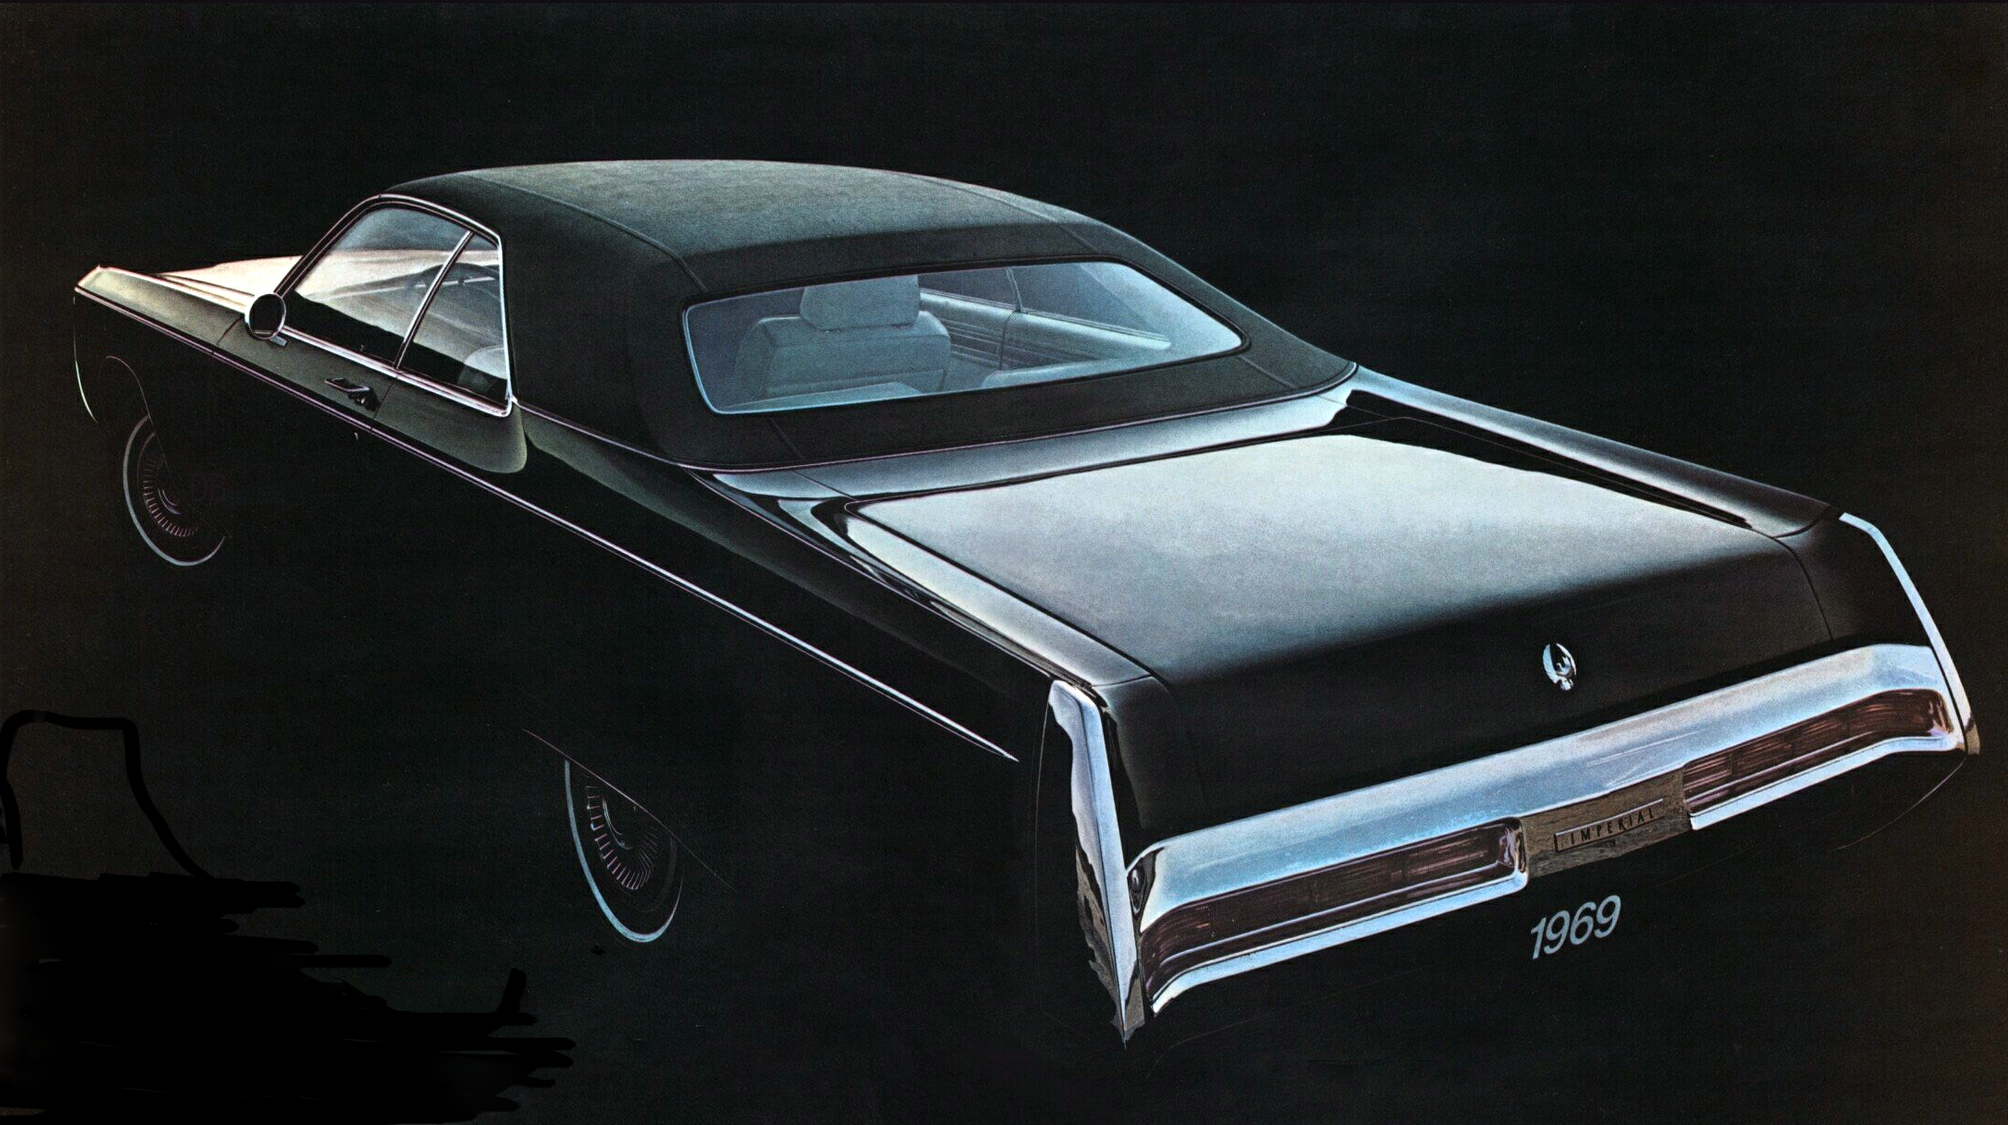 1969 Chrysler Imperial LeBaron